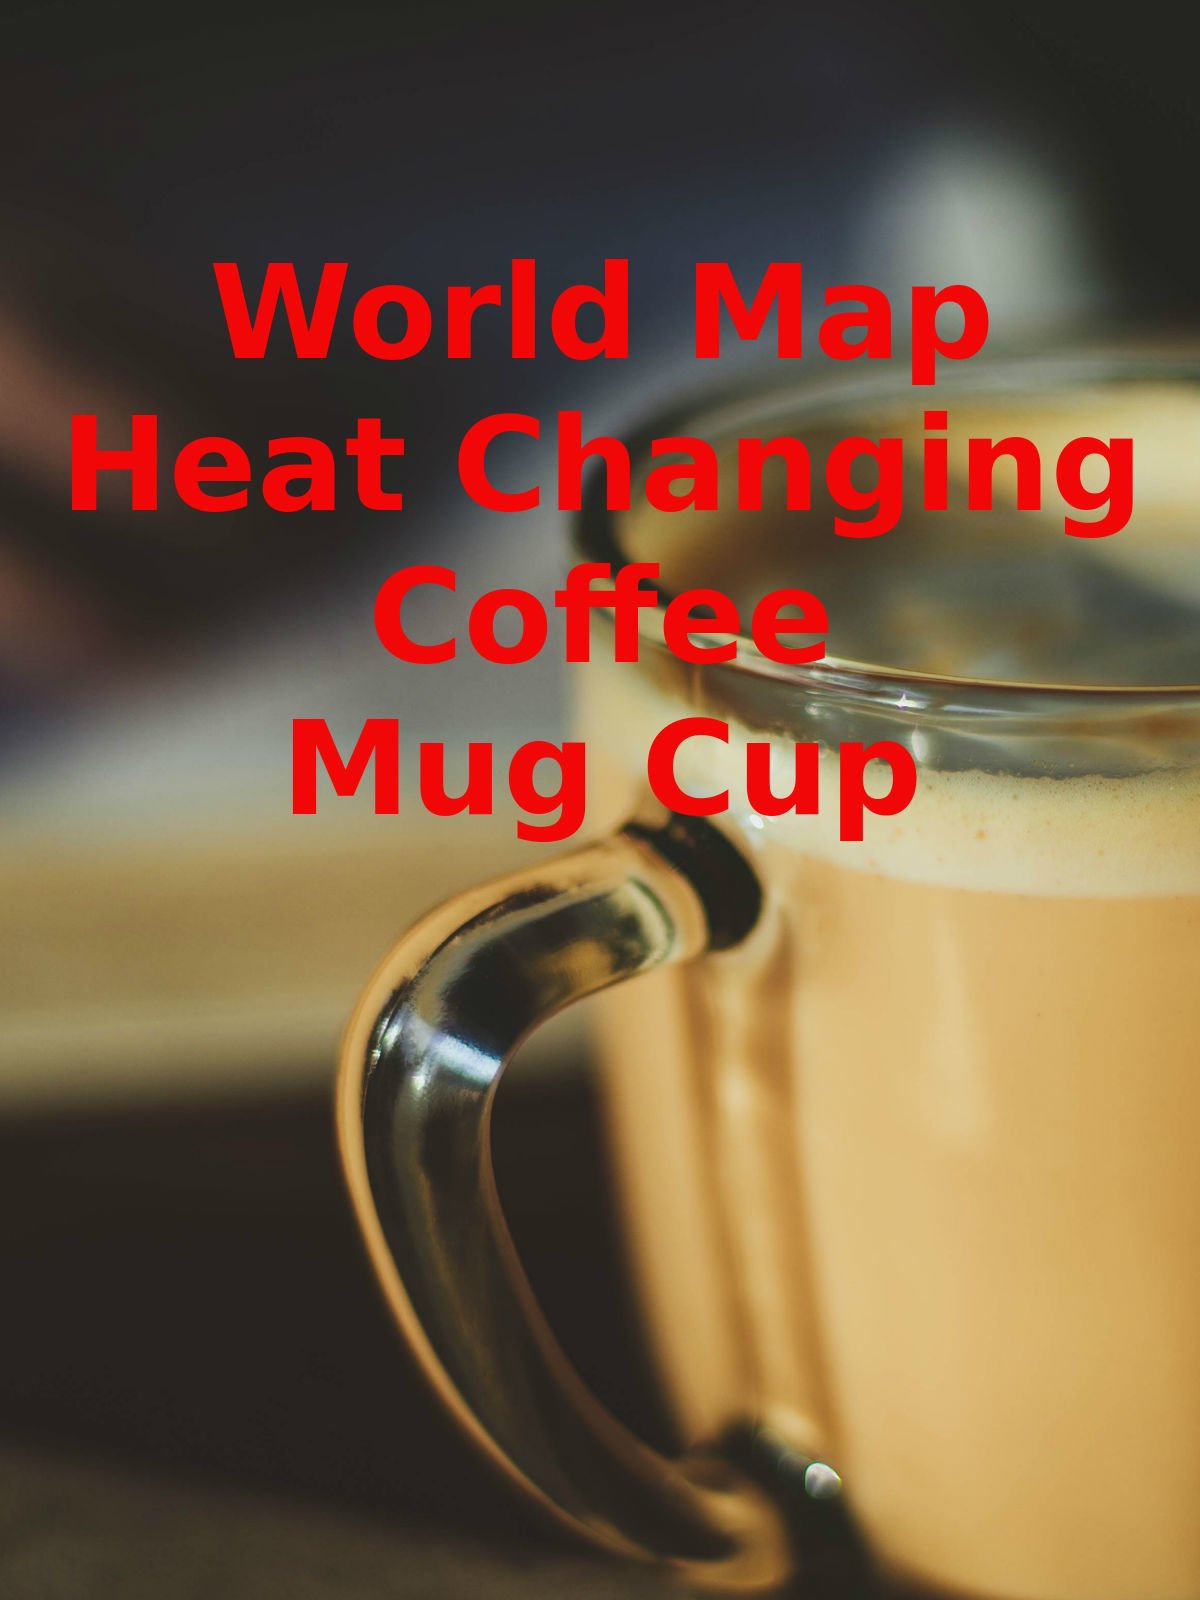 Review: World Map Heat Changing Coffee Mug Cup